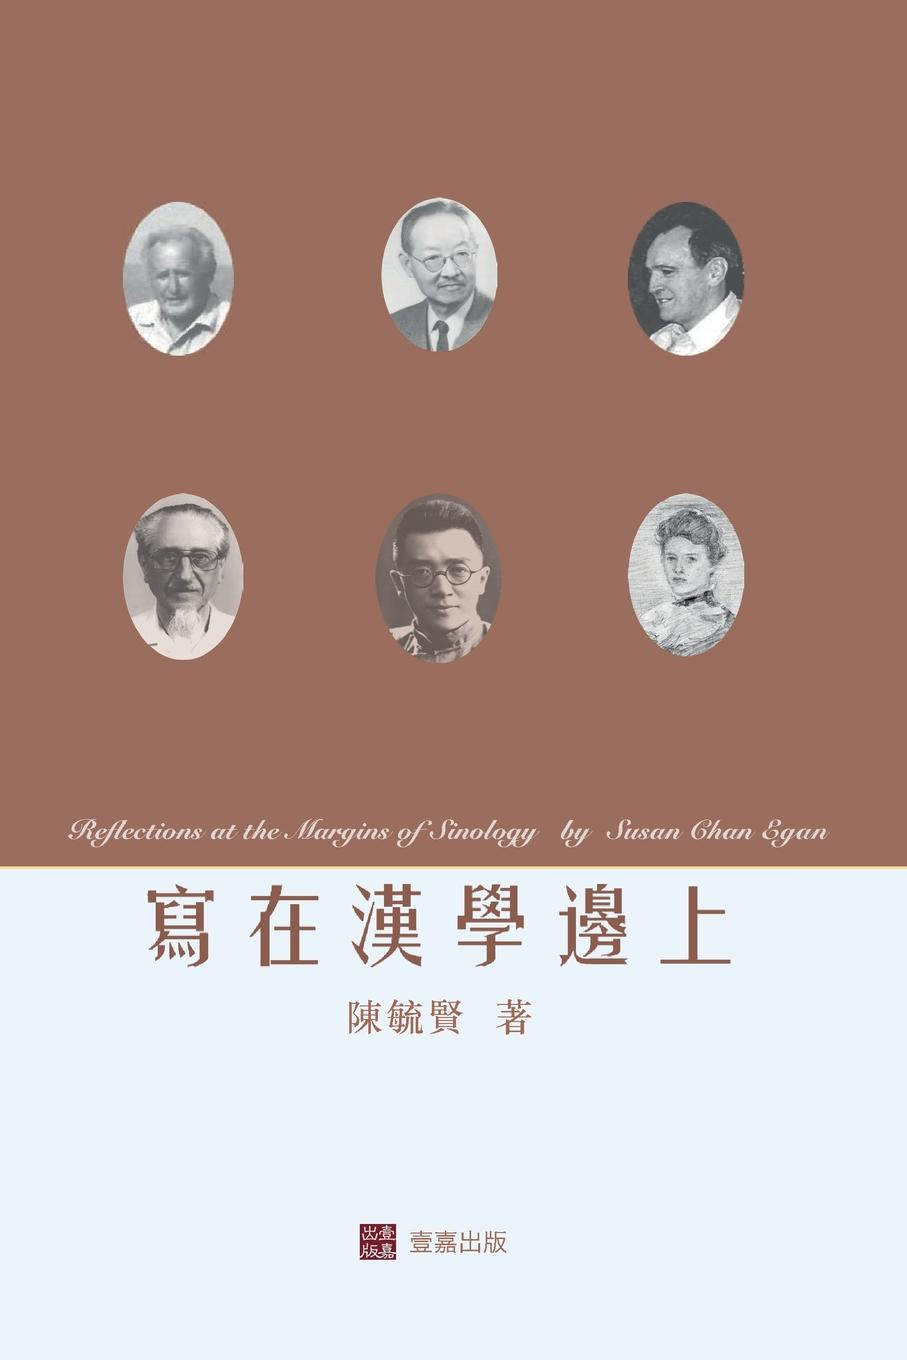 毓賢 陳 ......Reflections at the Margins of Sinology (Chinese edition) 健康9元书系列:肾病病人生活一点通